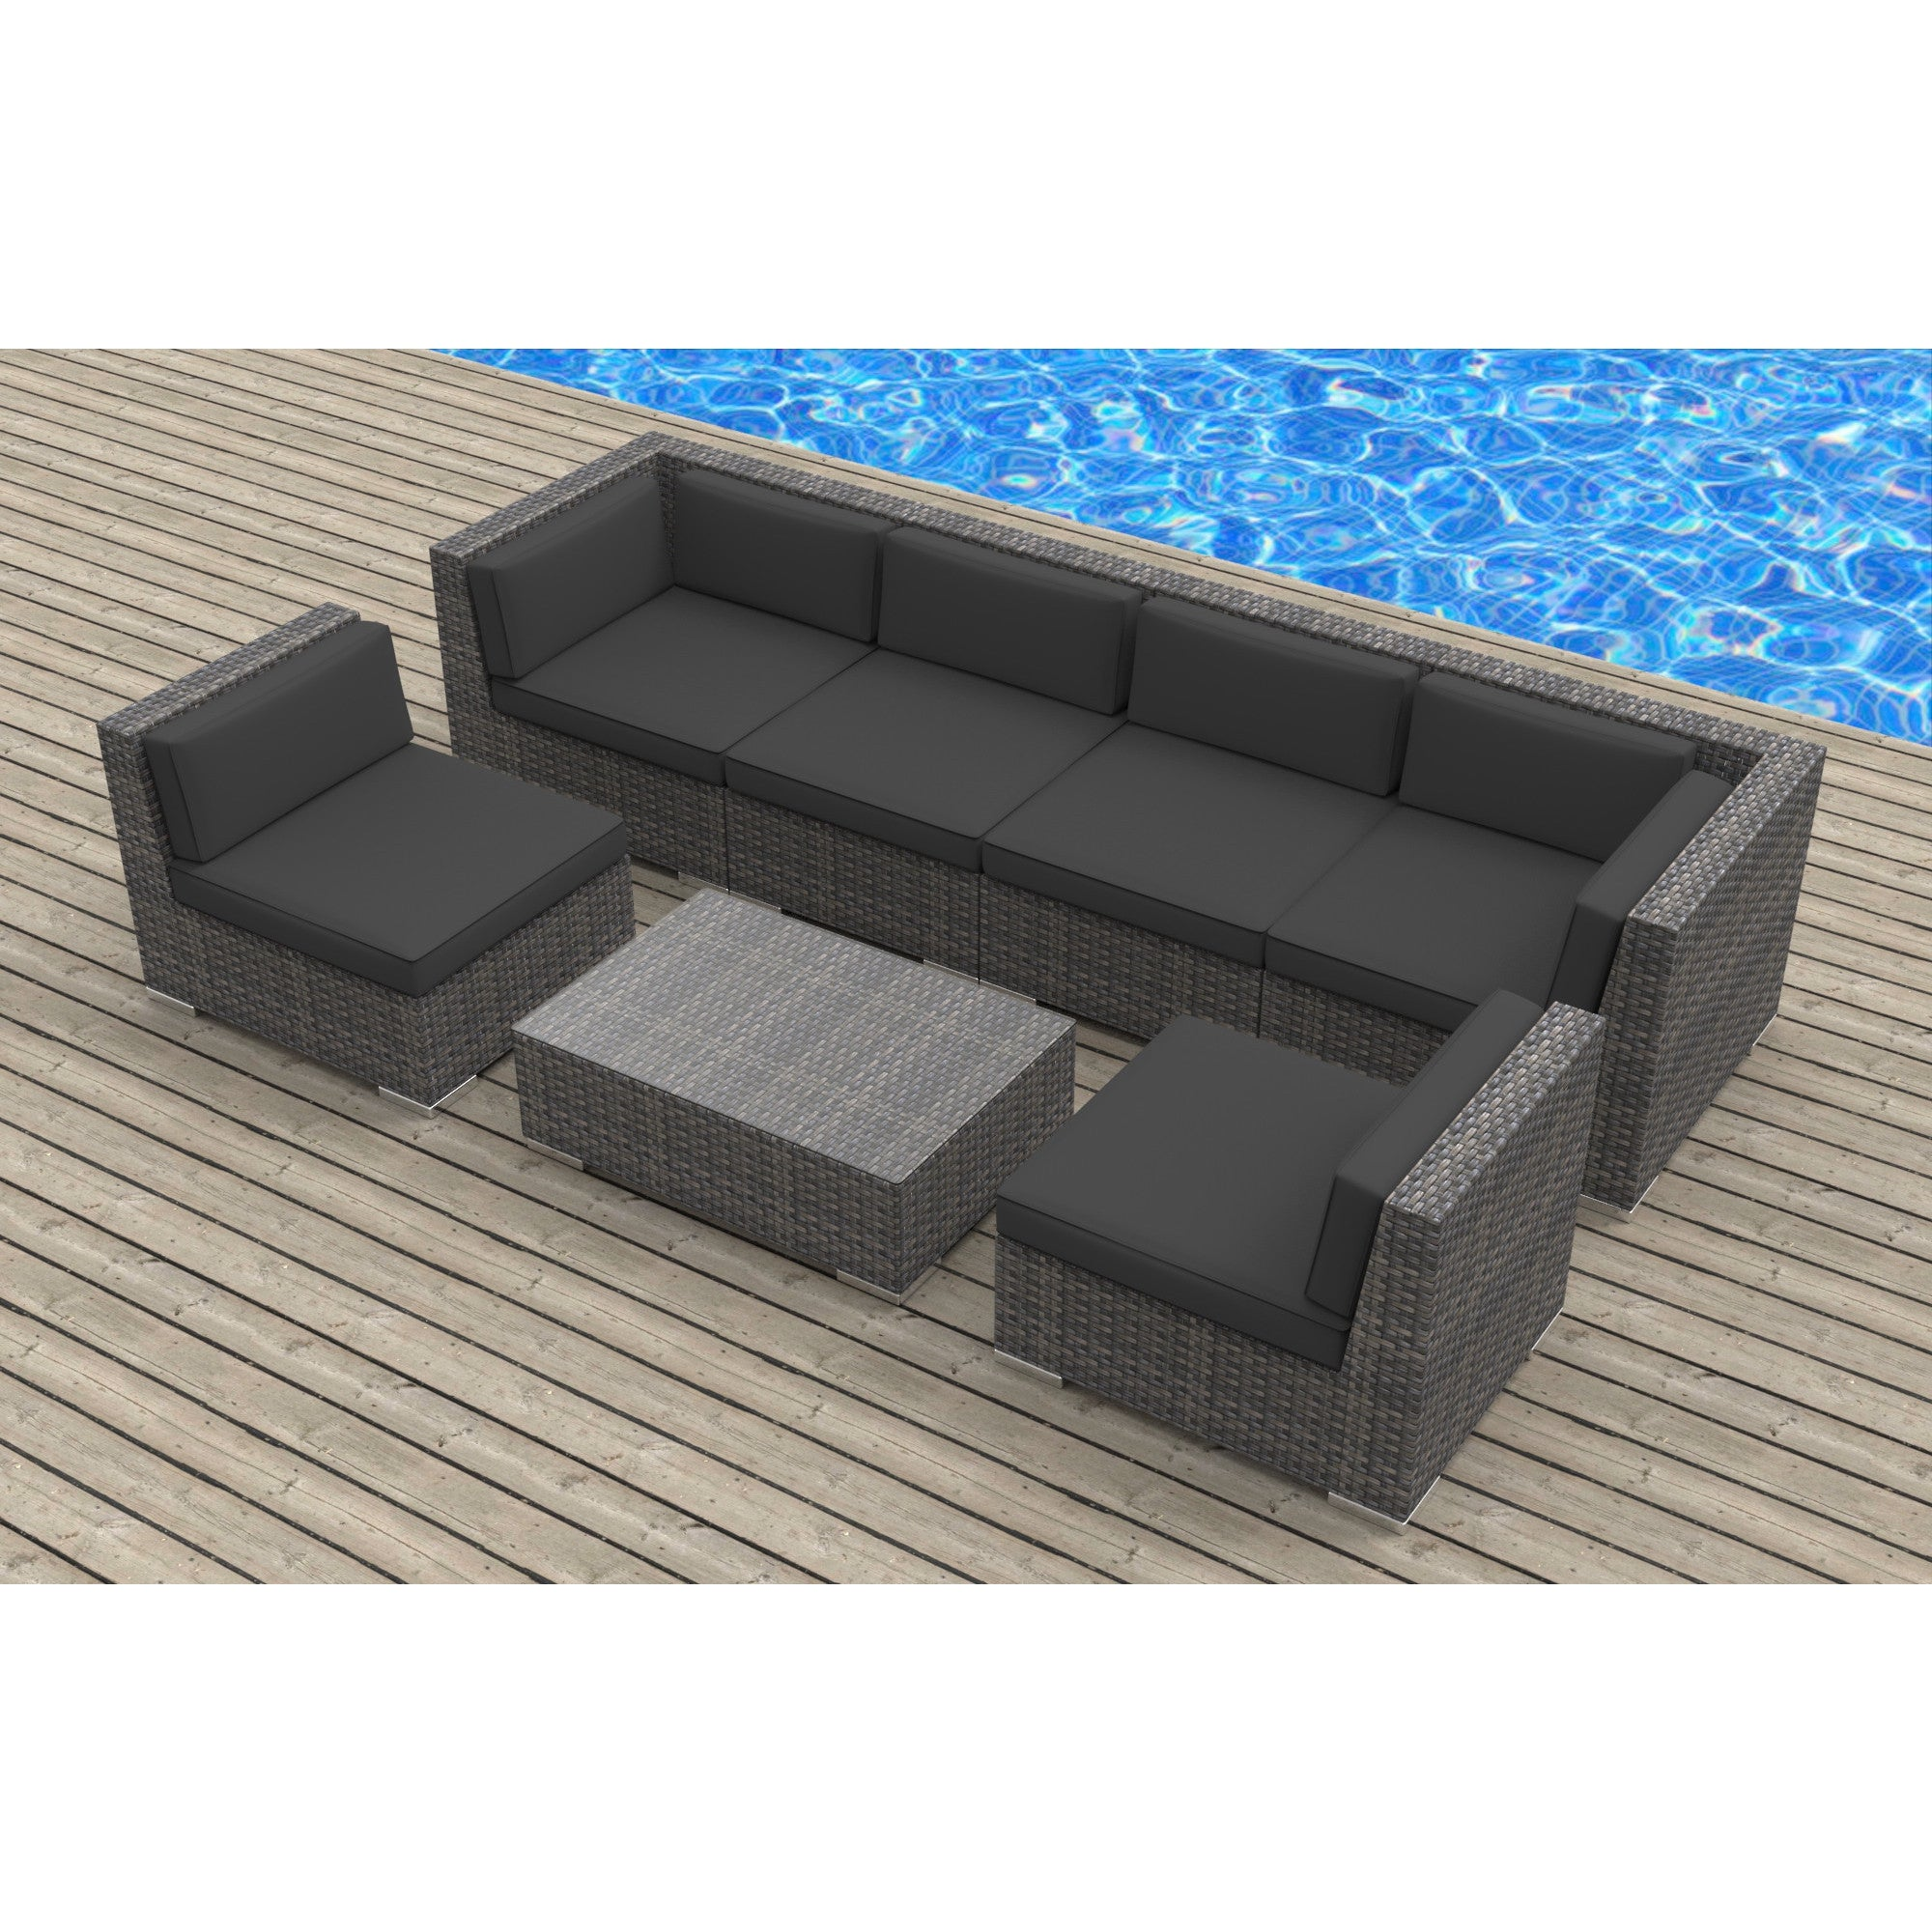 Urban Furnishing Oahu Wicker Rattan 7 piece Sectional Sofa Outdoor